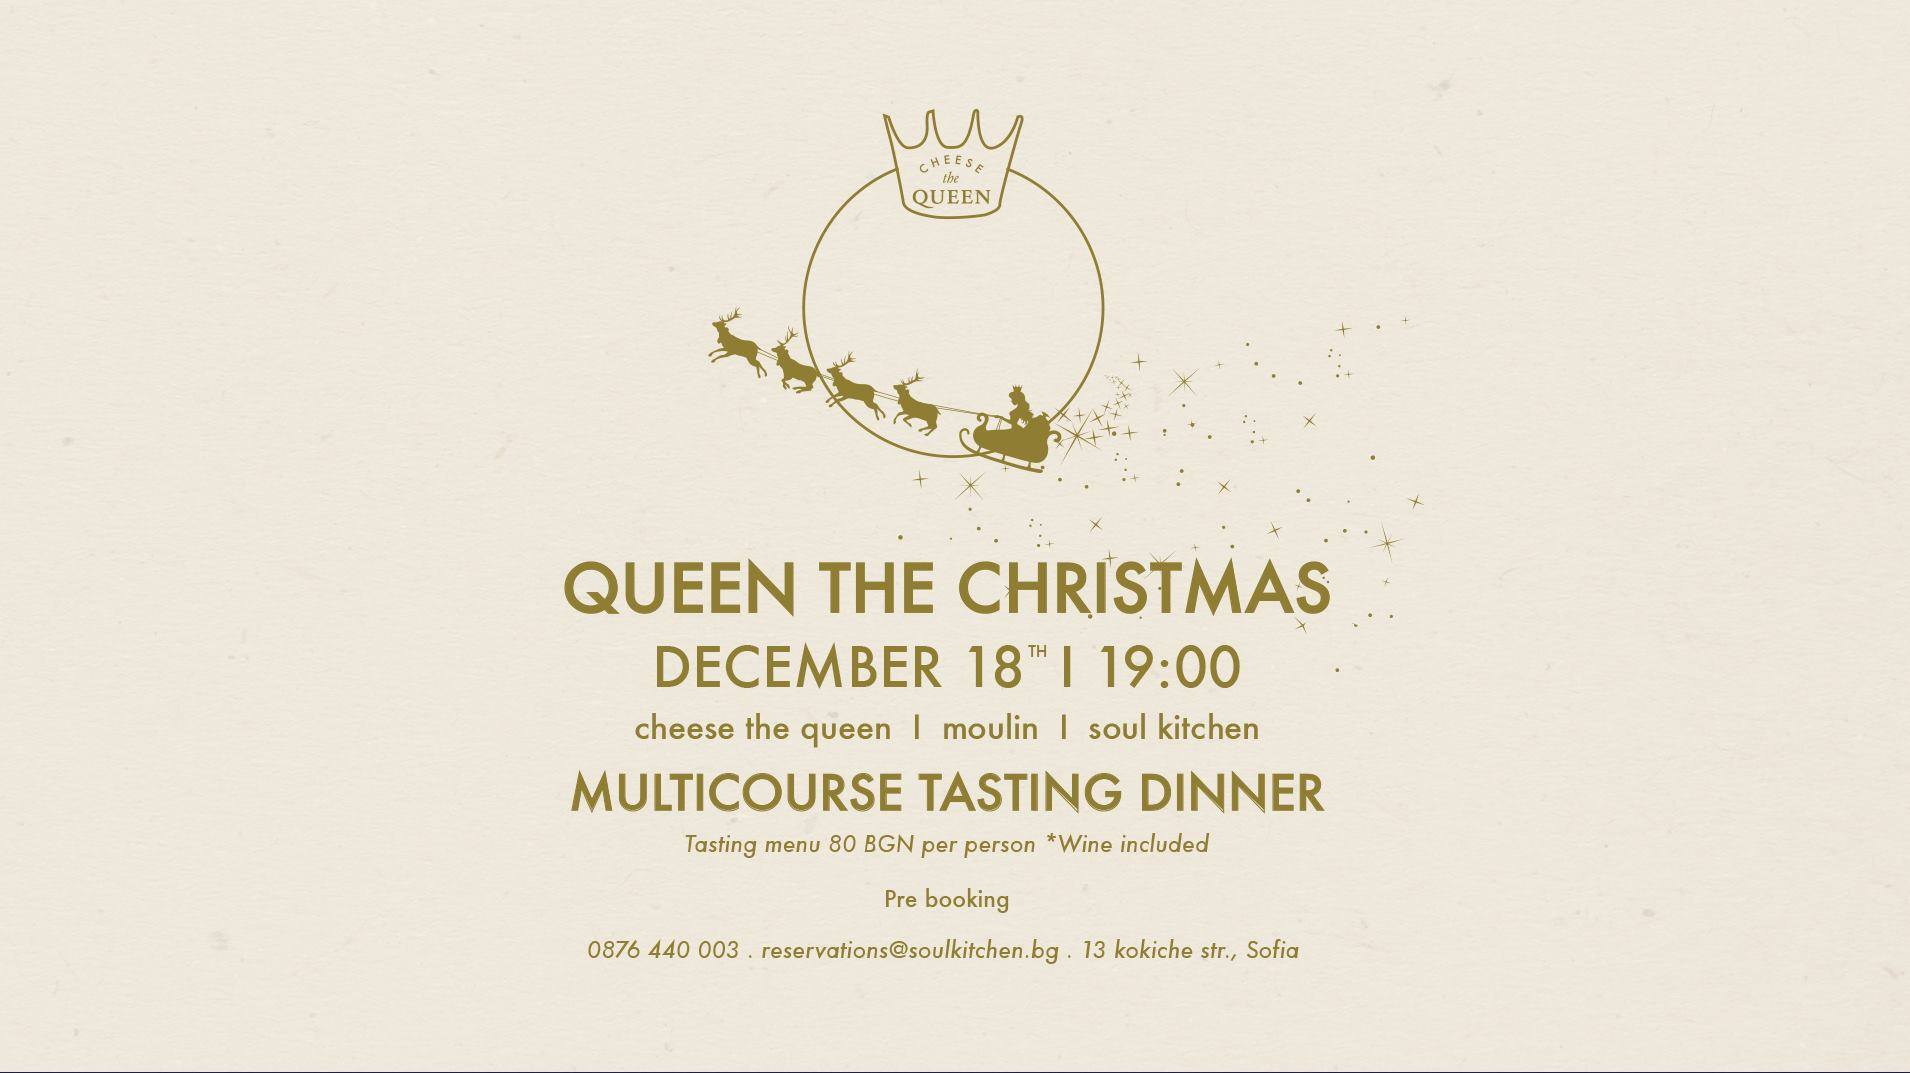 Queen the Christmas multicourse tasting dinner